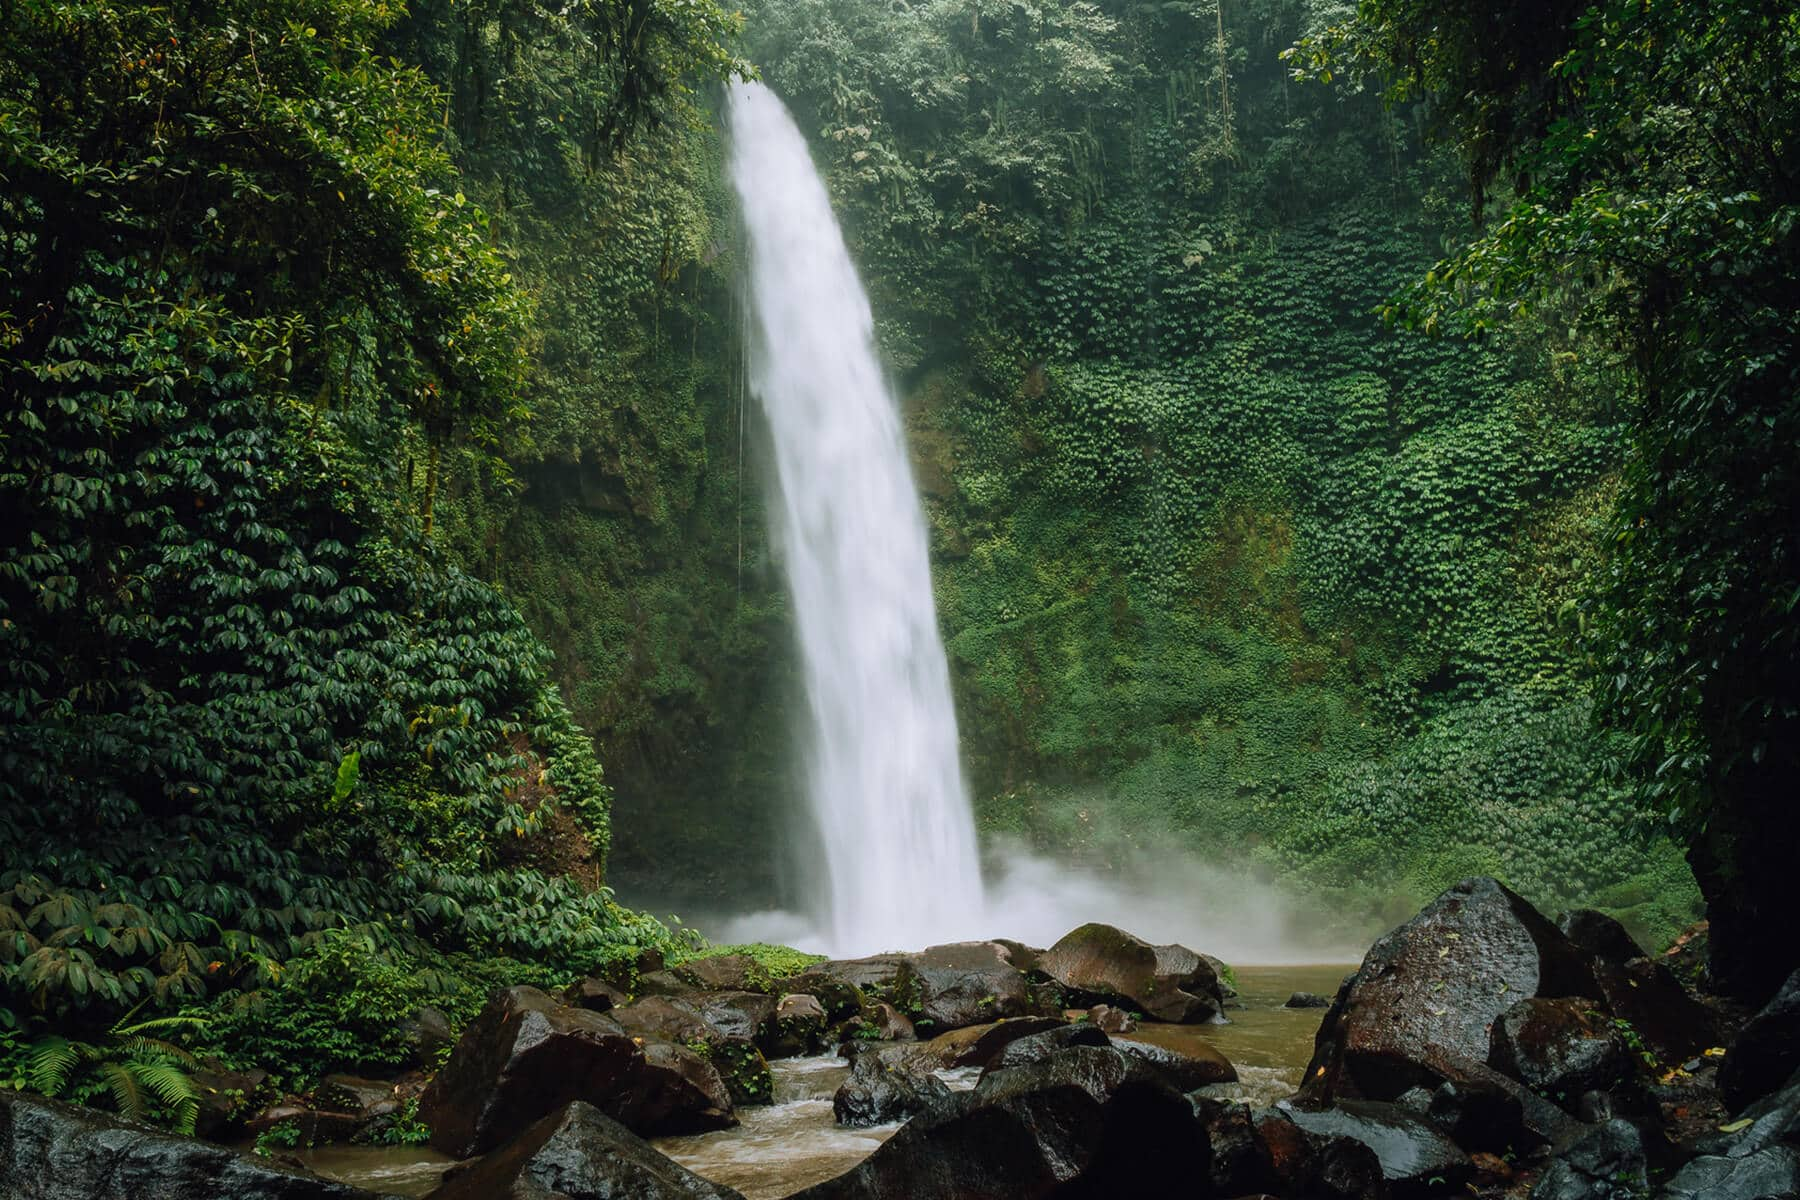 A guide to all the best waterfalls in Ubud Bali - View of the powerful Nungnung Waterfall